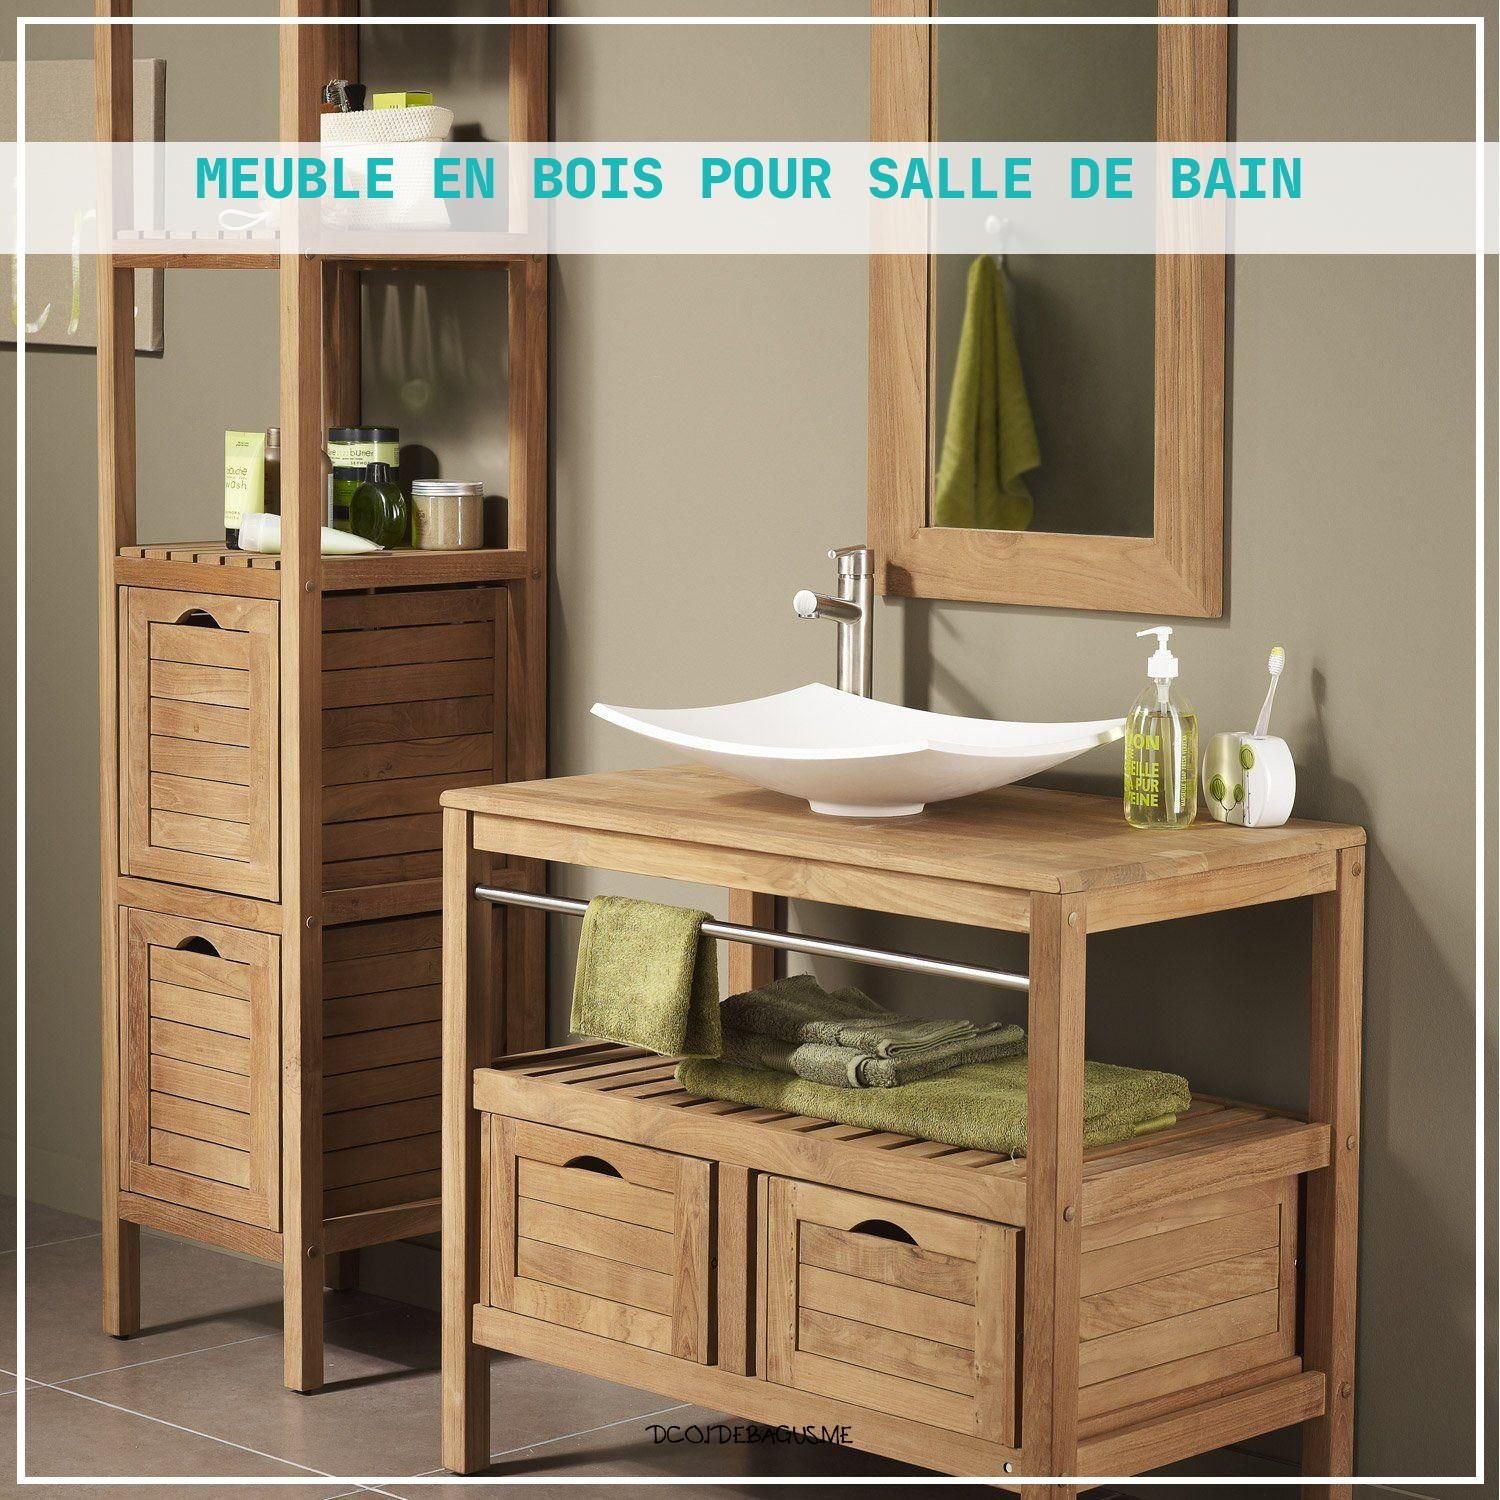 7 Unique Meuble En Bois Pour Salle De Bain In 2020 Zen Bathroom Decor Bathroom Furniture Cheap Bathrooms